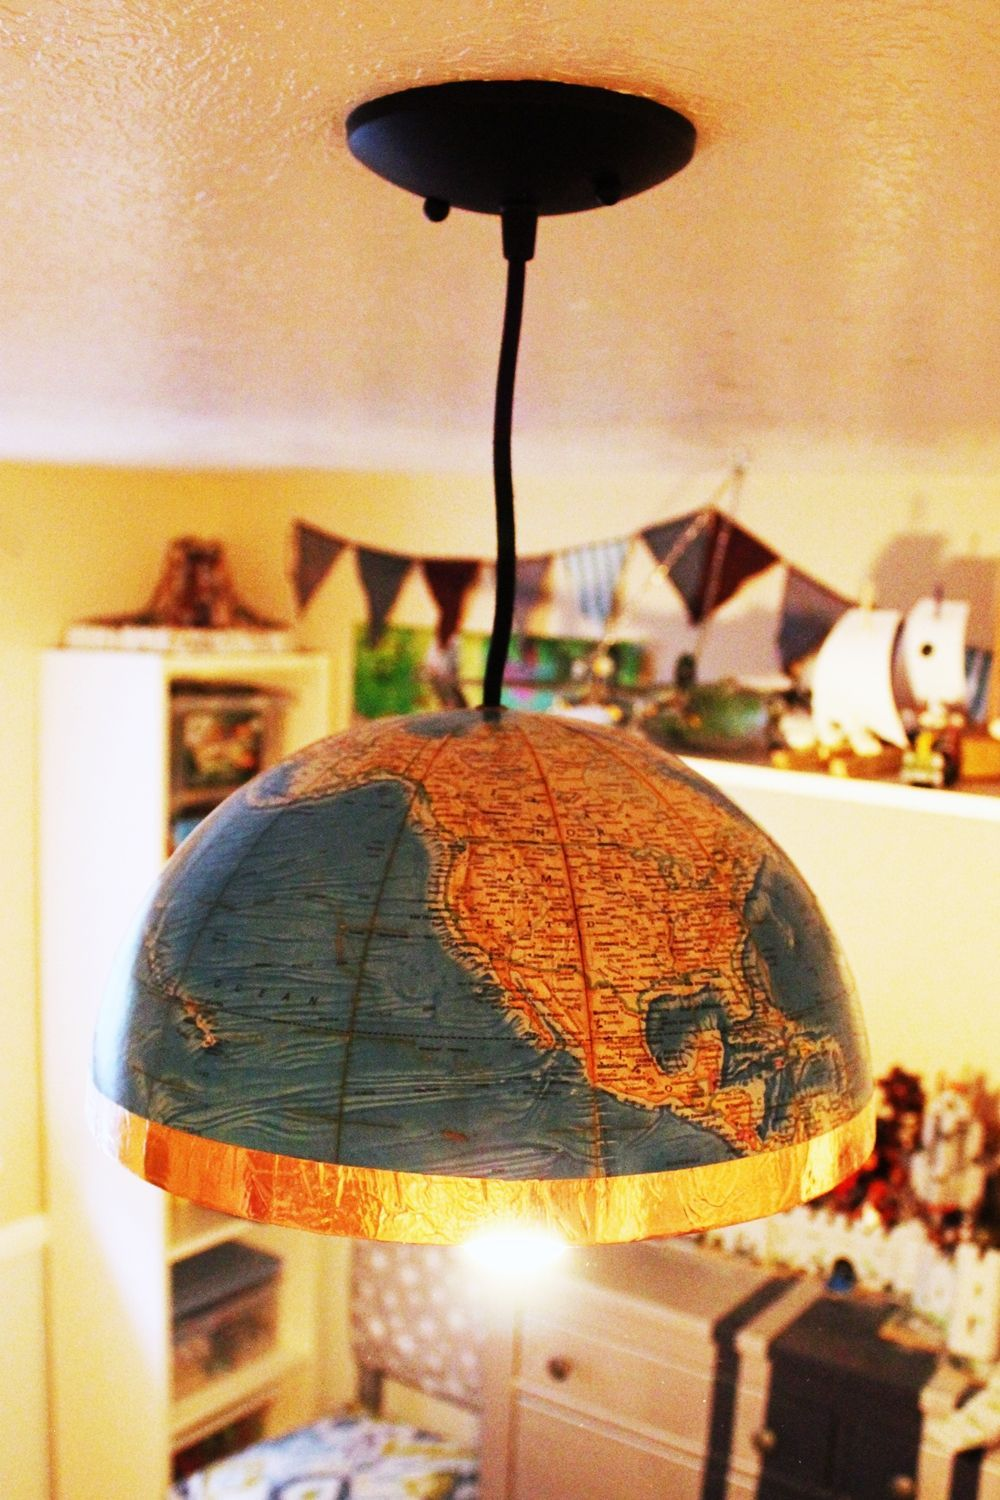 Turn the light on in your new globe